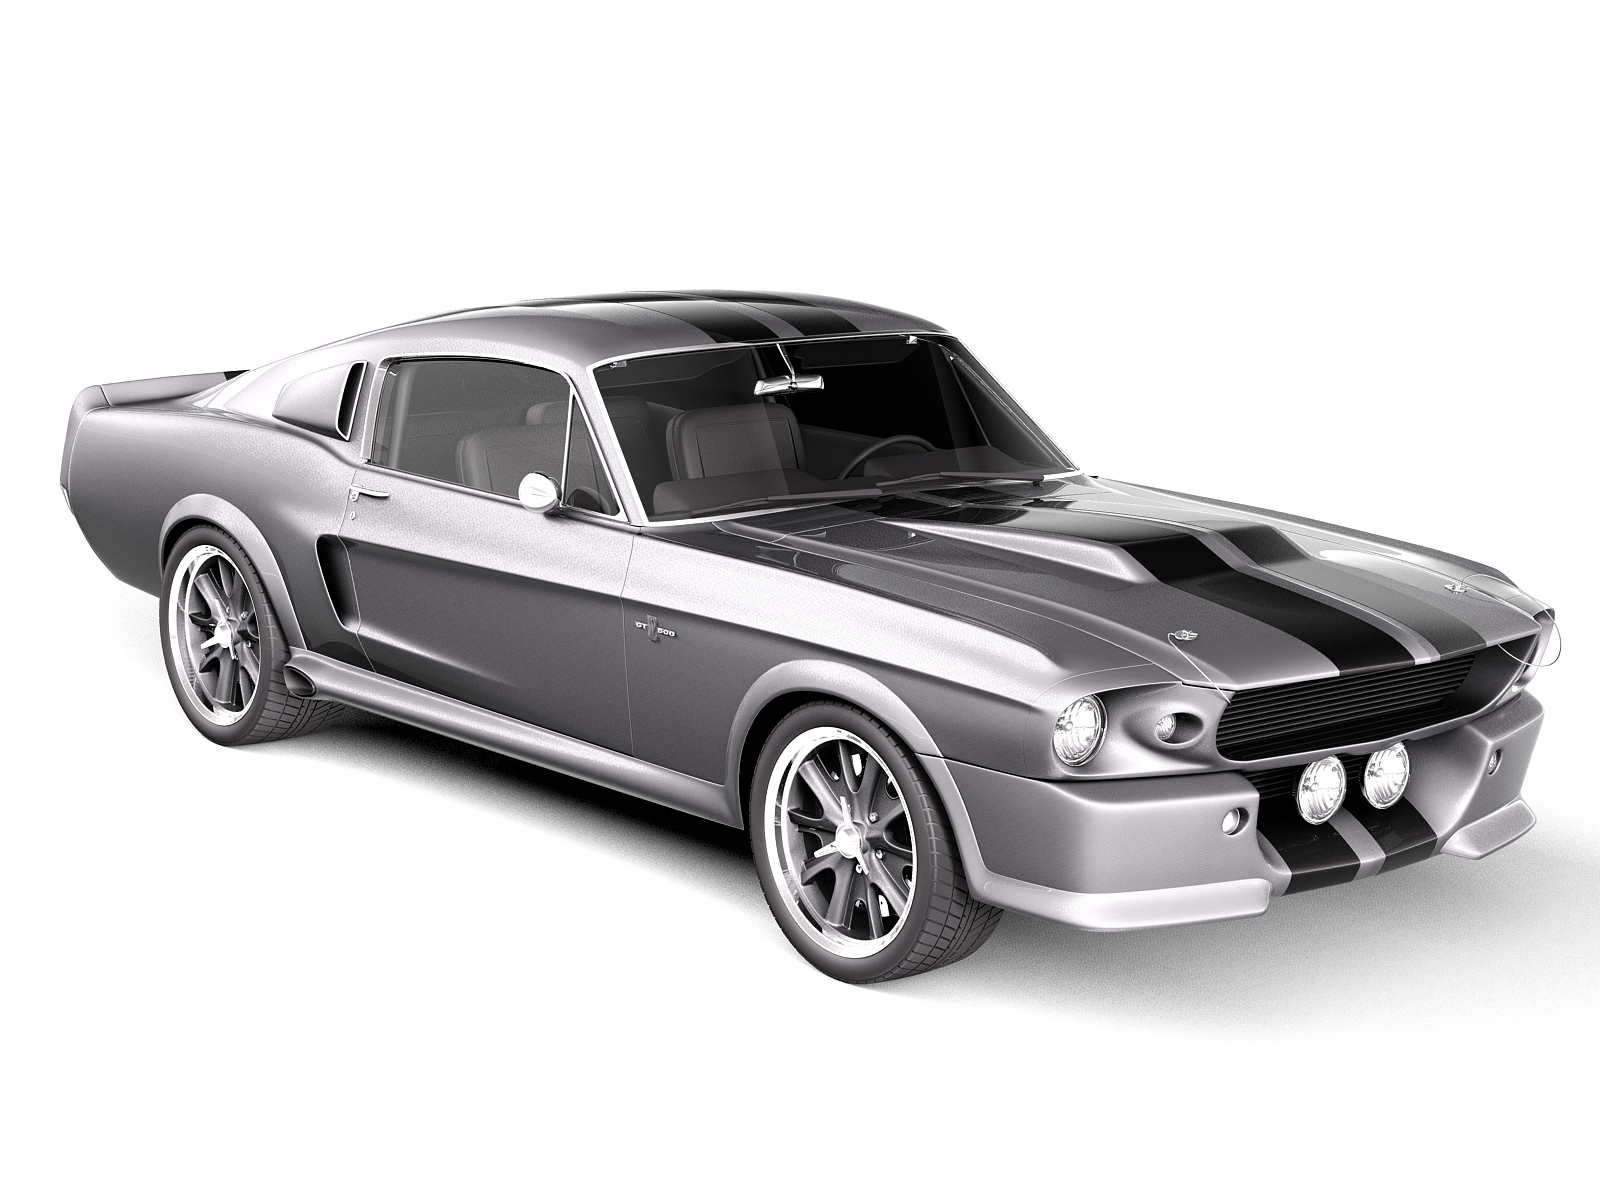 eleanor ford mustang gt500 shelby cobra classic 1967 3d model. Black Bedroom Furniture Sets. Home Design Ideas